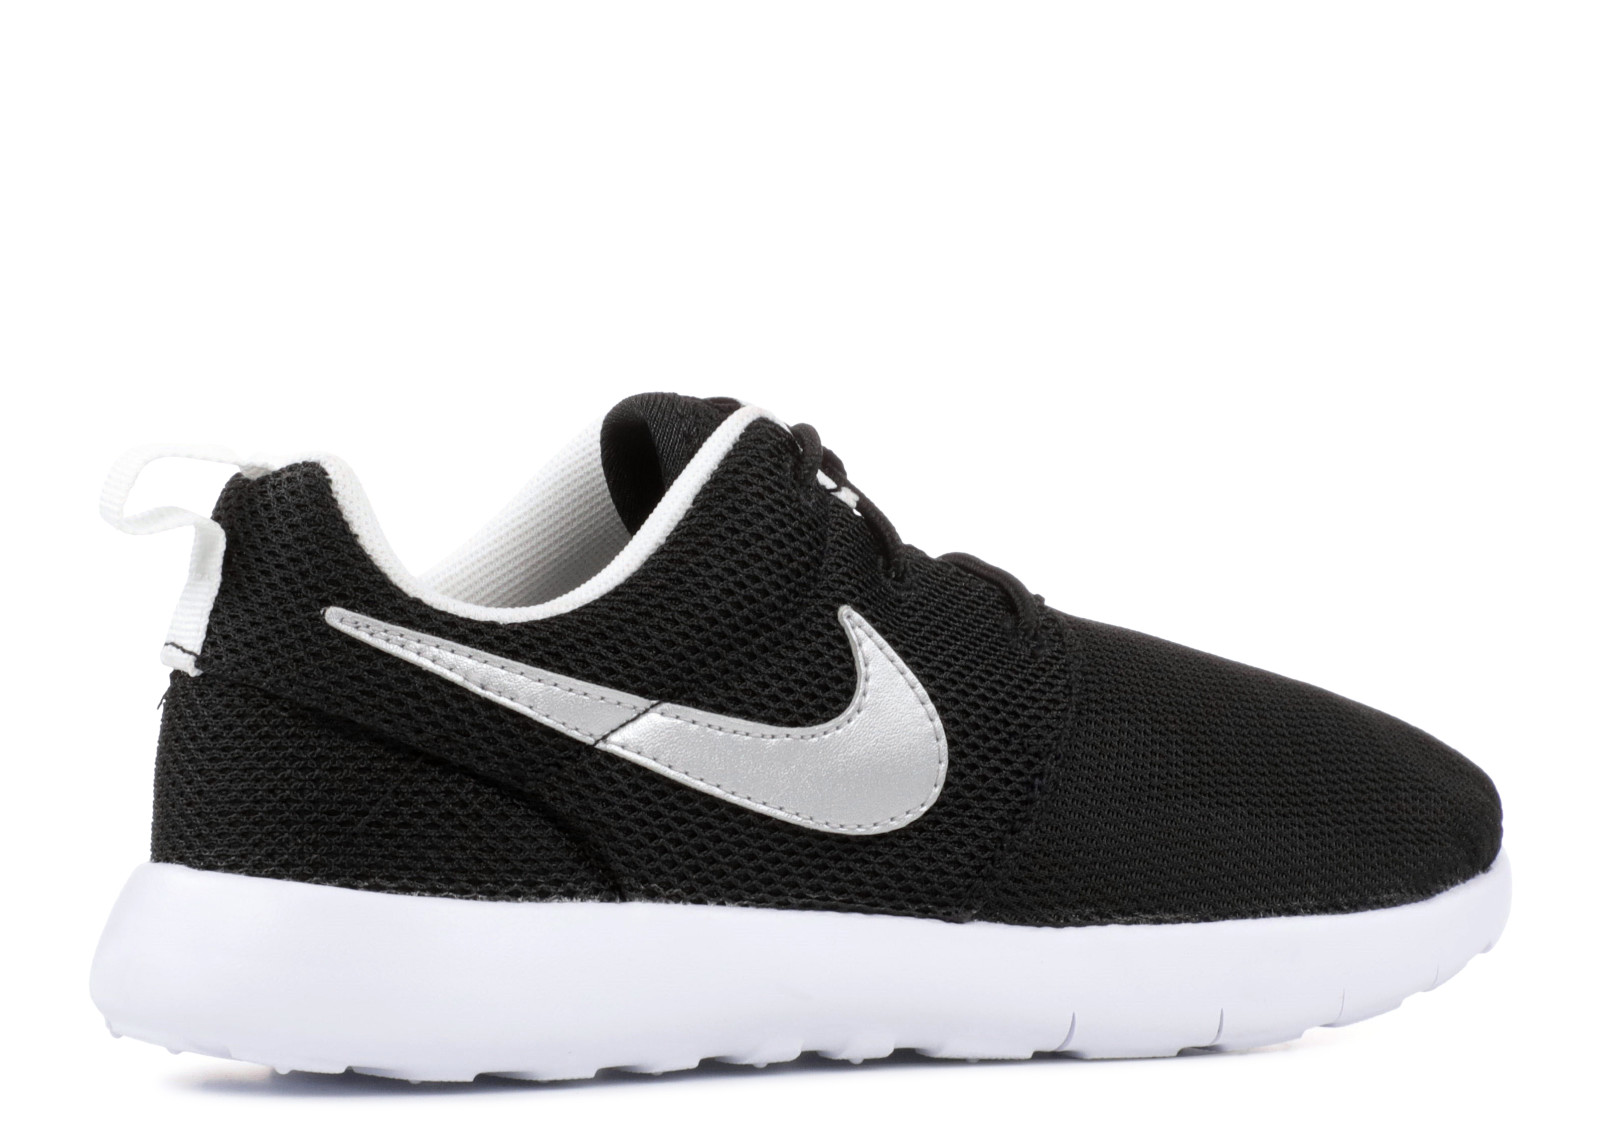 599728 007 Nike Roshe Run (black Metallic Silver) Gra